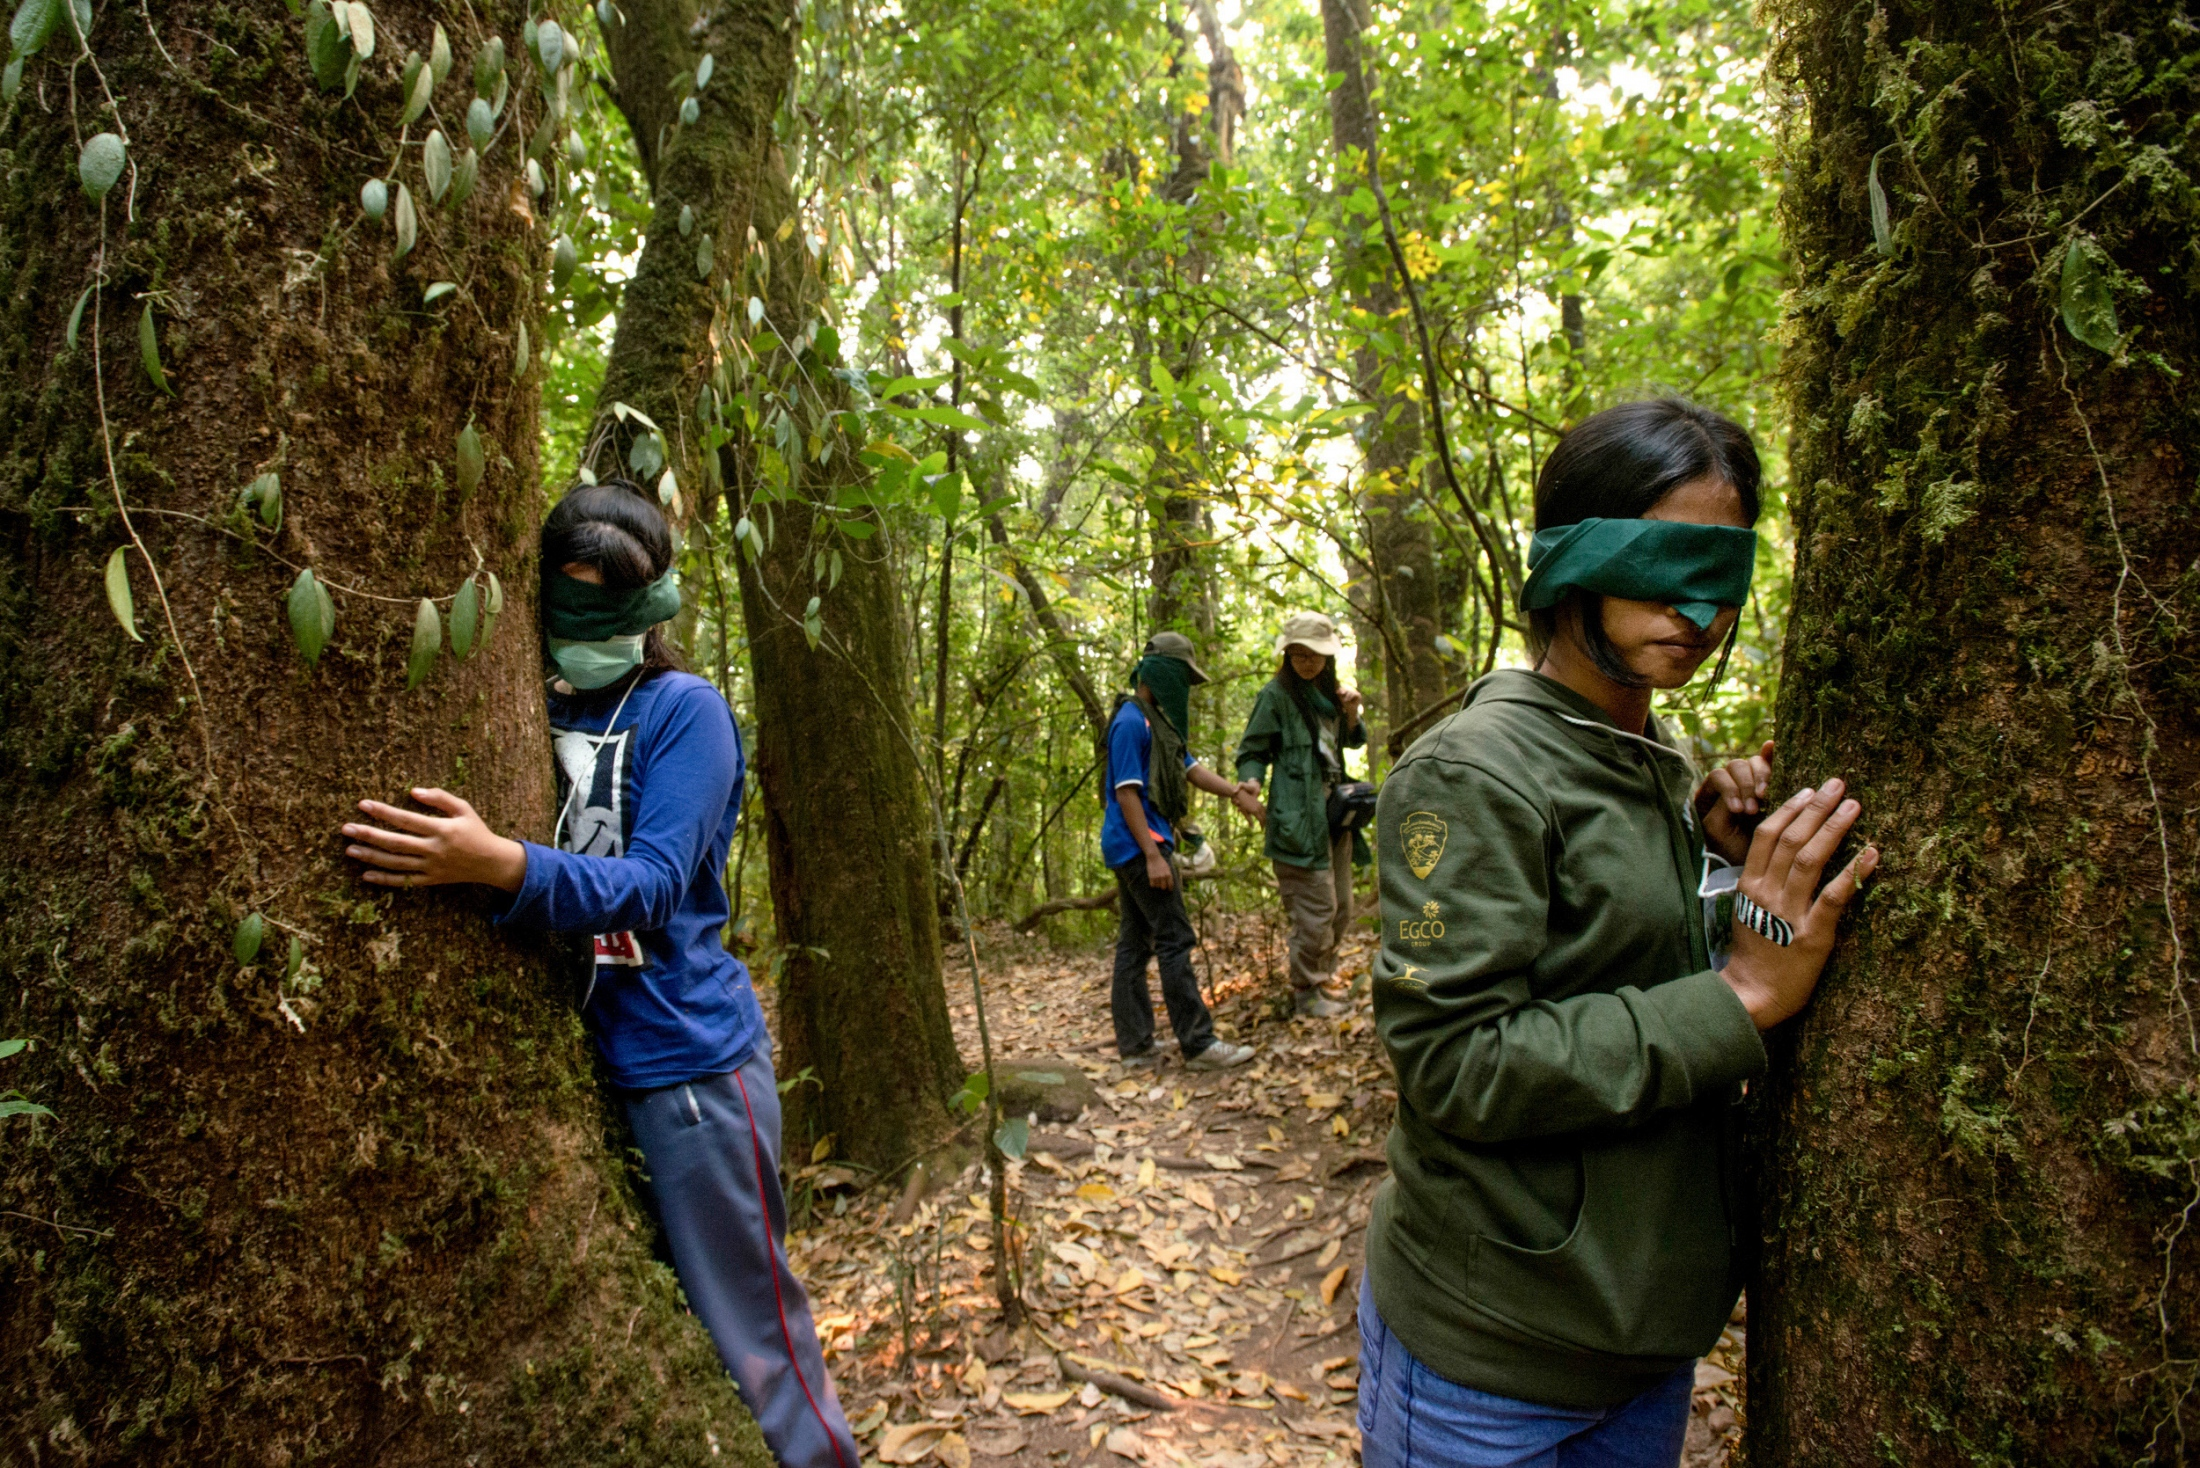 Young people use sensory activities to awaken their own sense of connection with nature. They have been implanted with the sustainable values of environmental savings by a group of environmental activists.